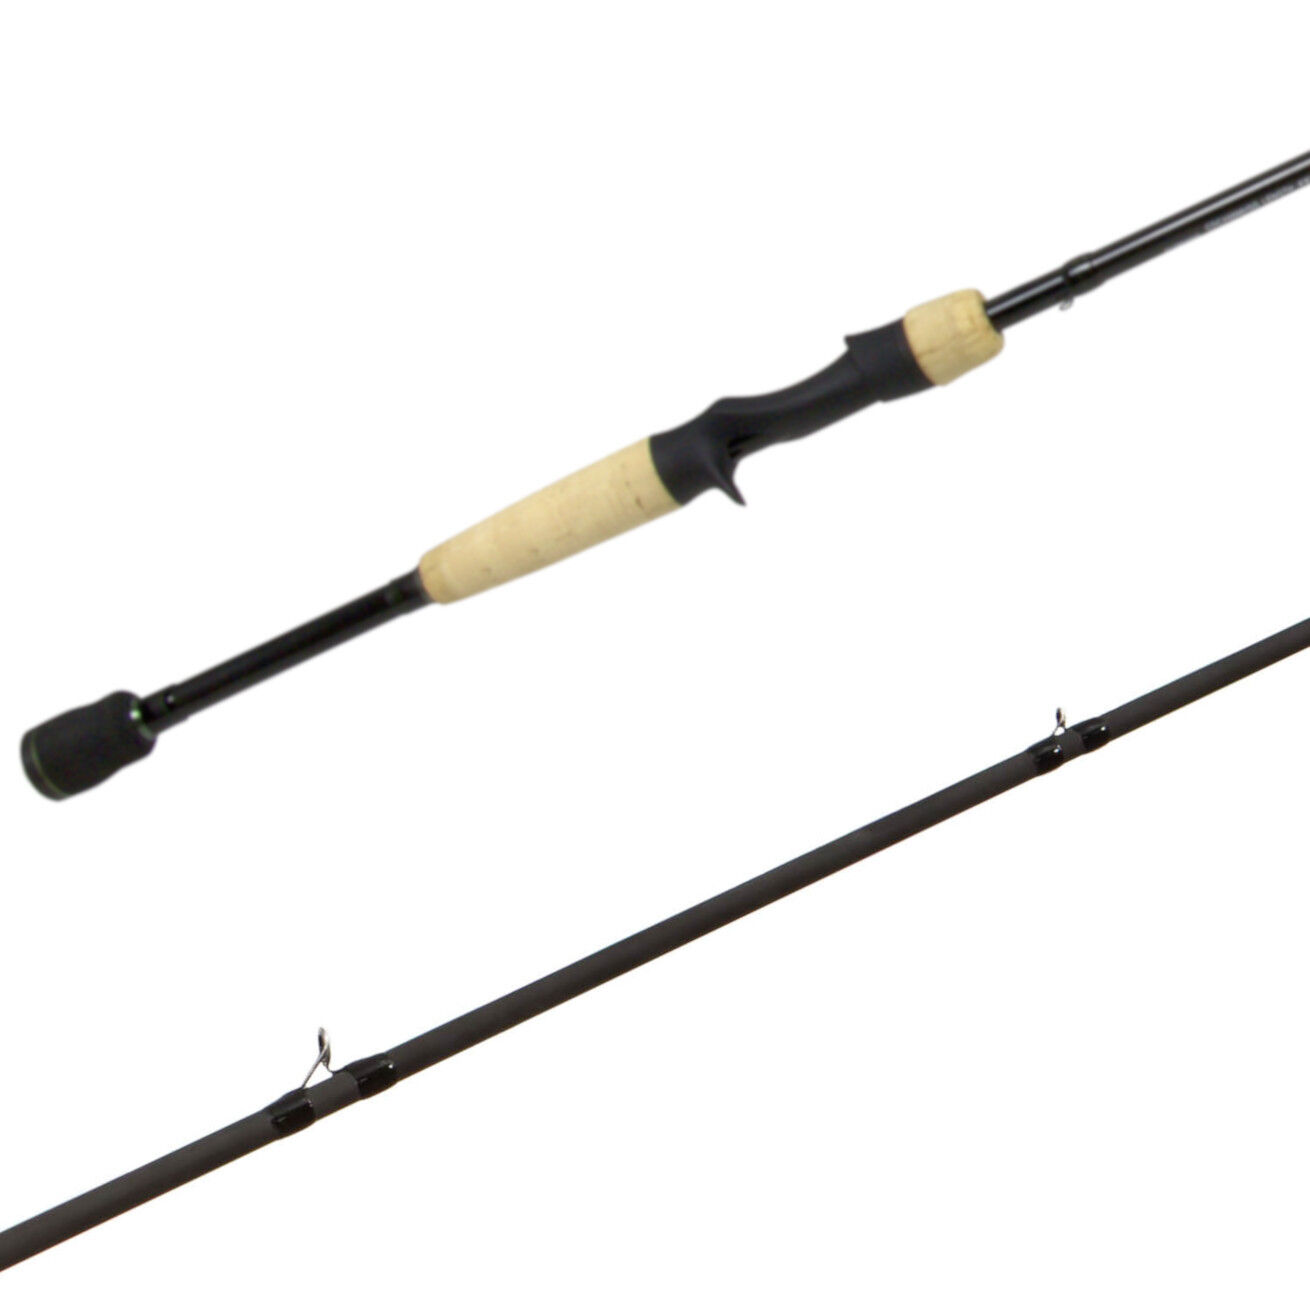 Shimano Curado Split Grip Casting Rods - - - Bass Tournament Casting Rods 0e7c85